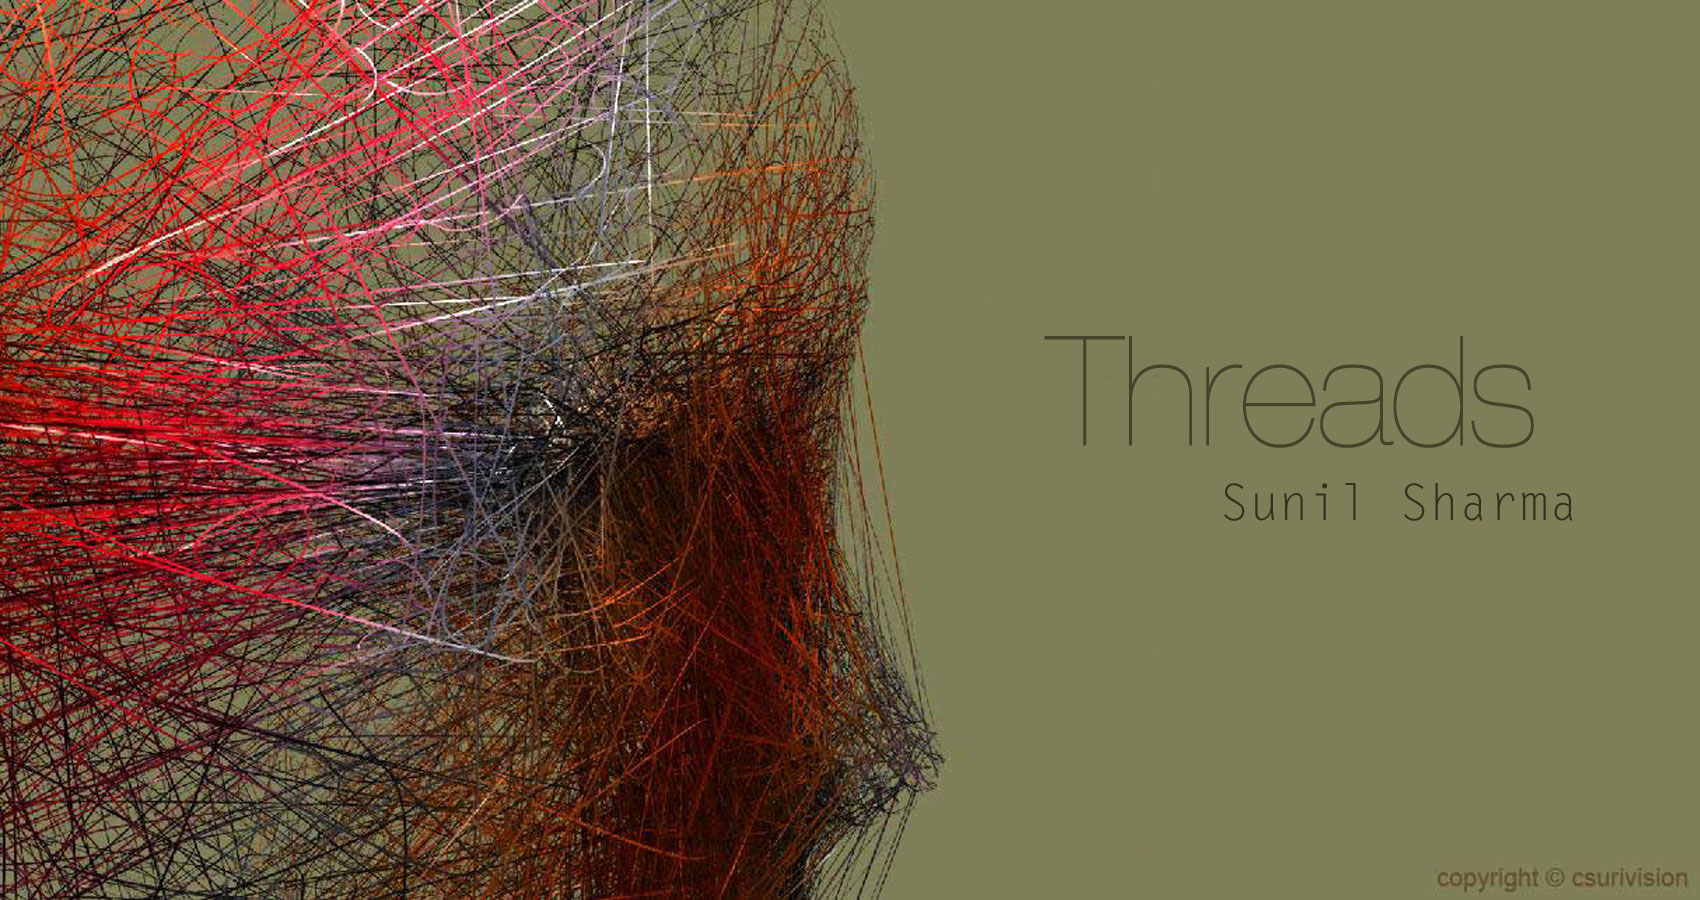 Threads by Sunil Sharma at Spillwords.com